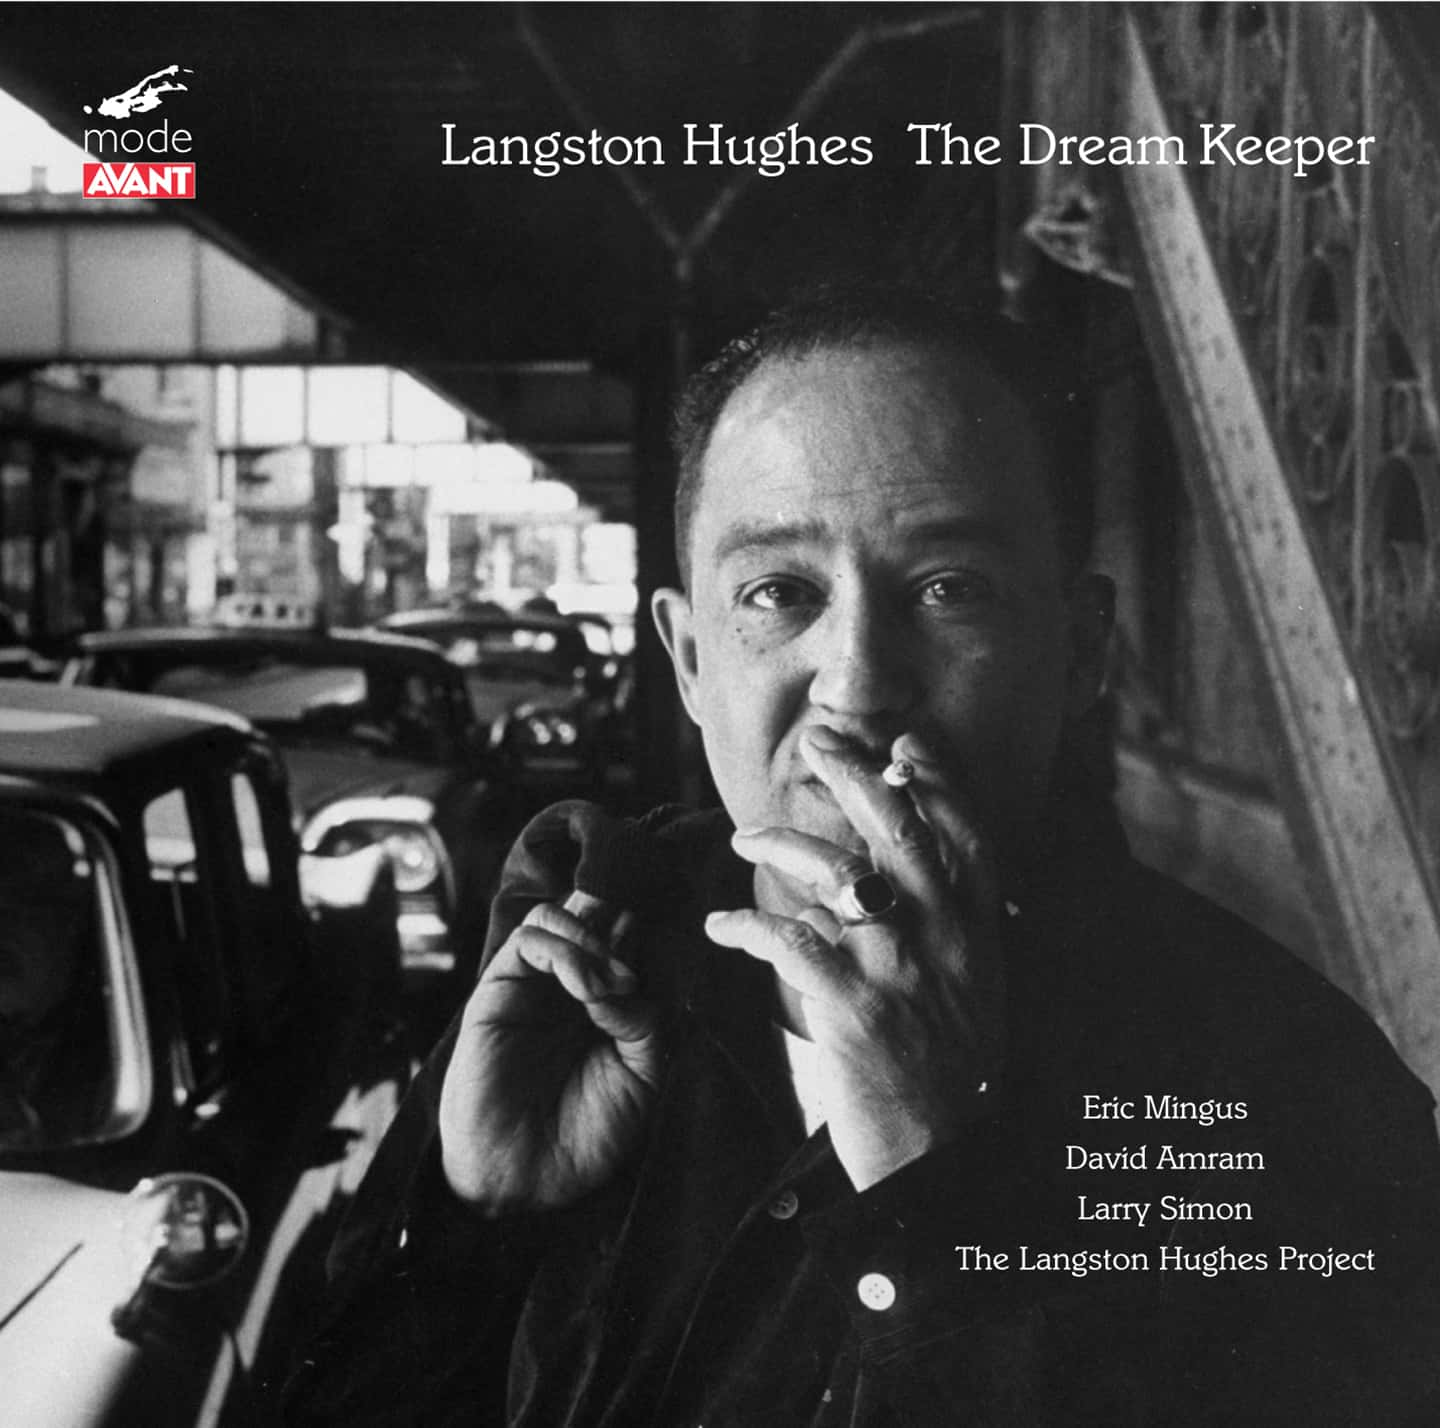 Langston Hughes, The Dream Keeper